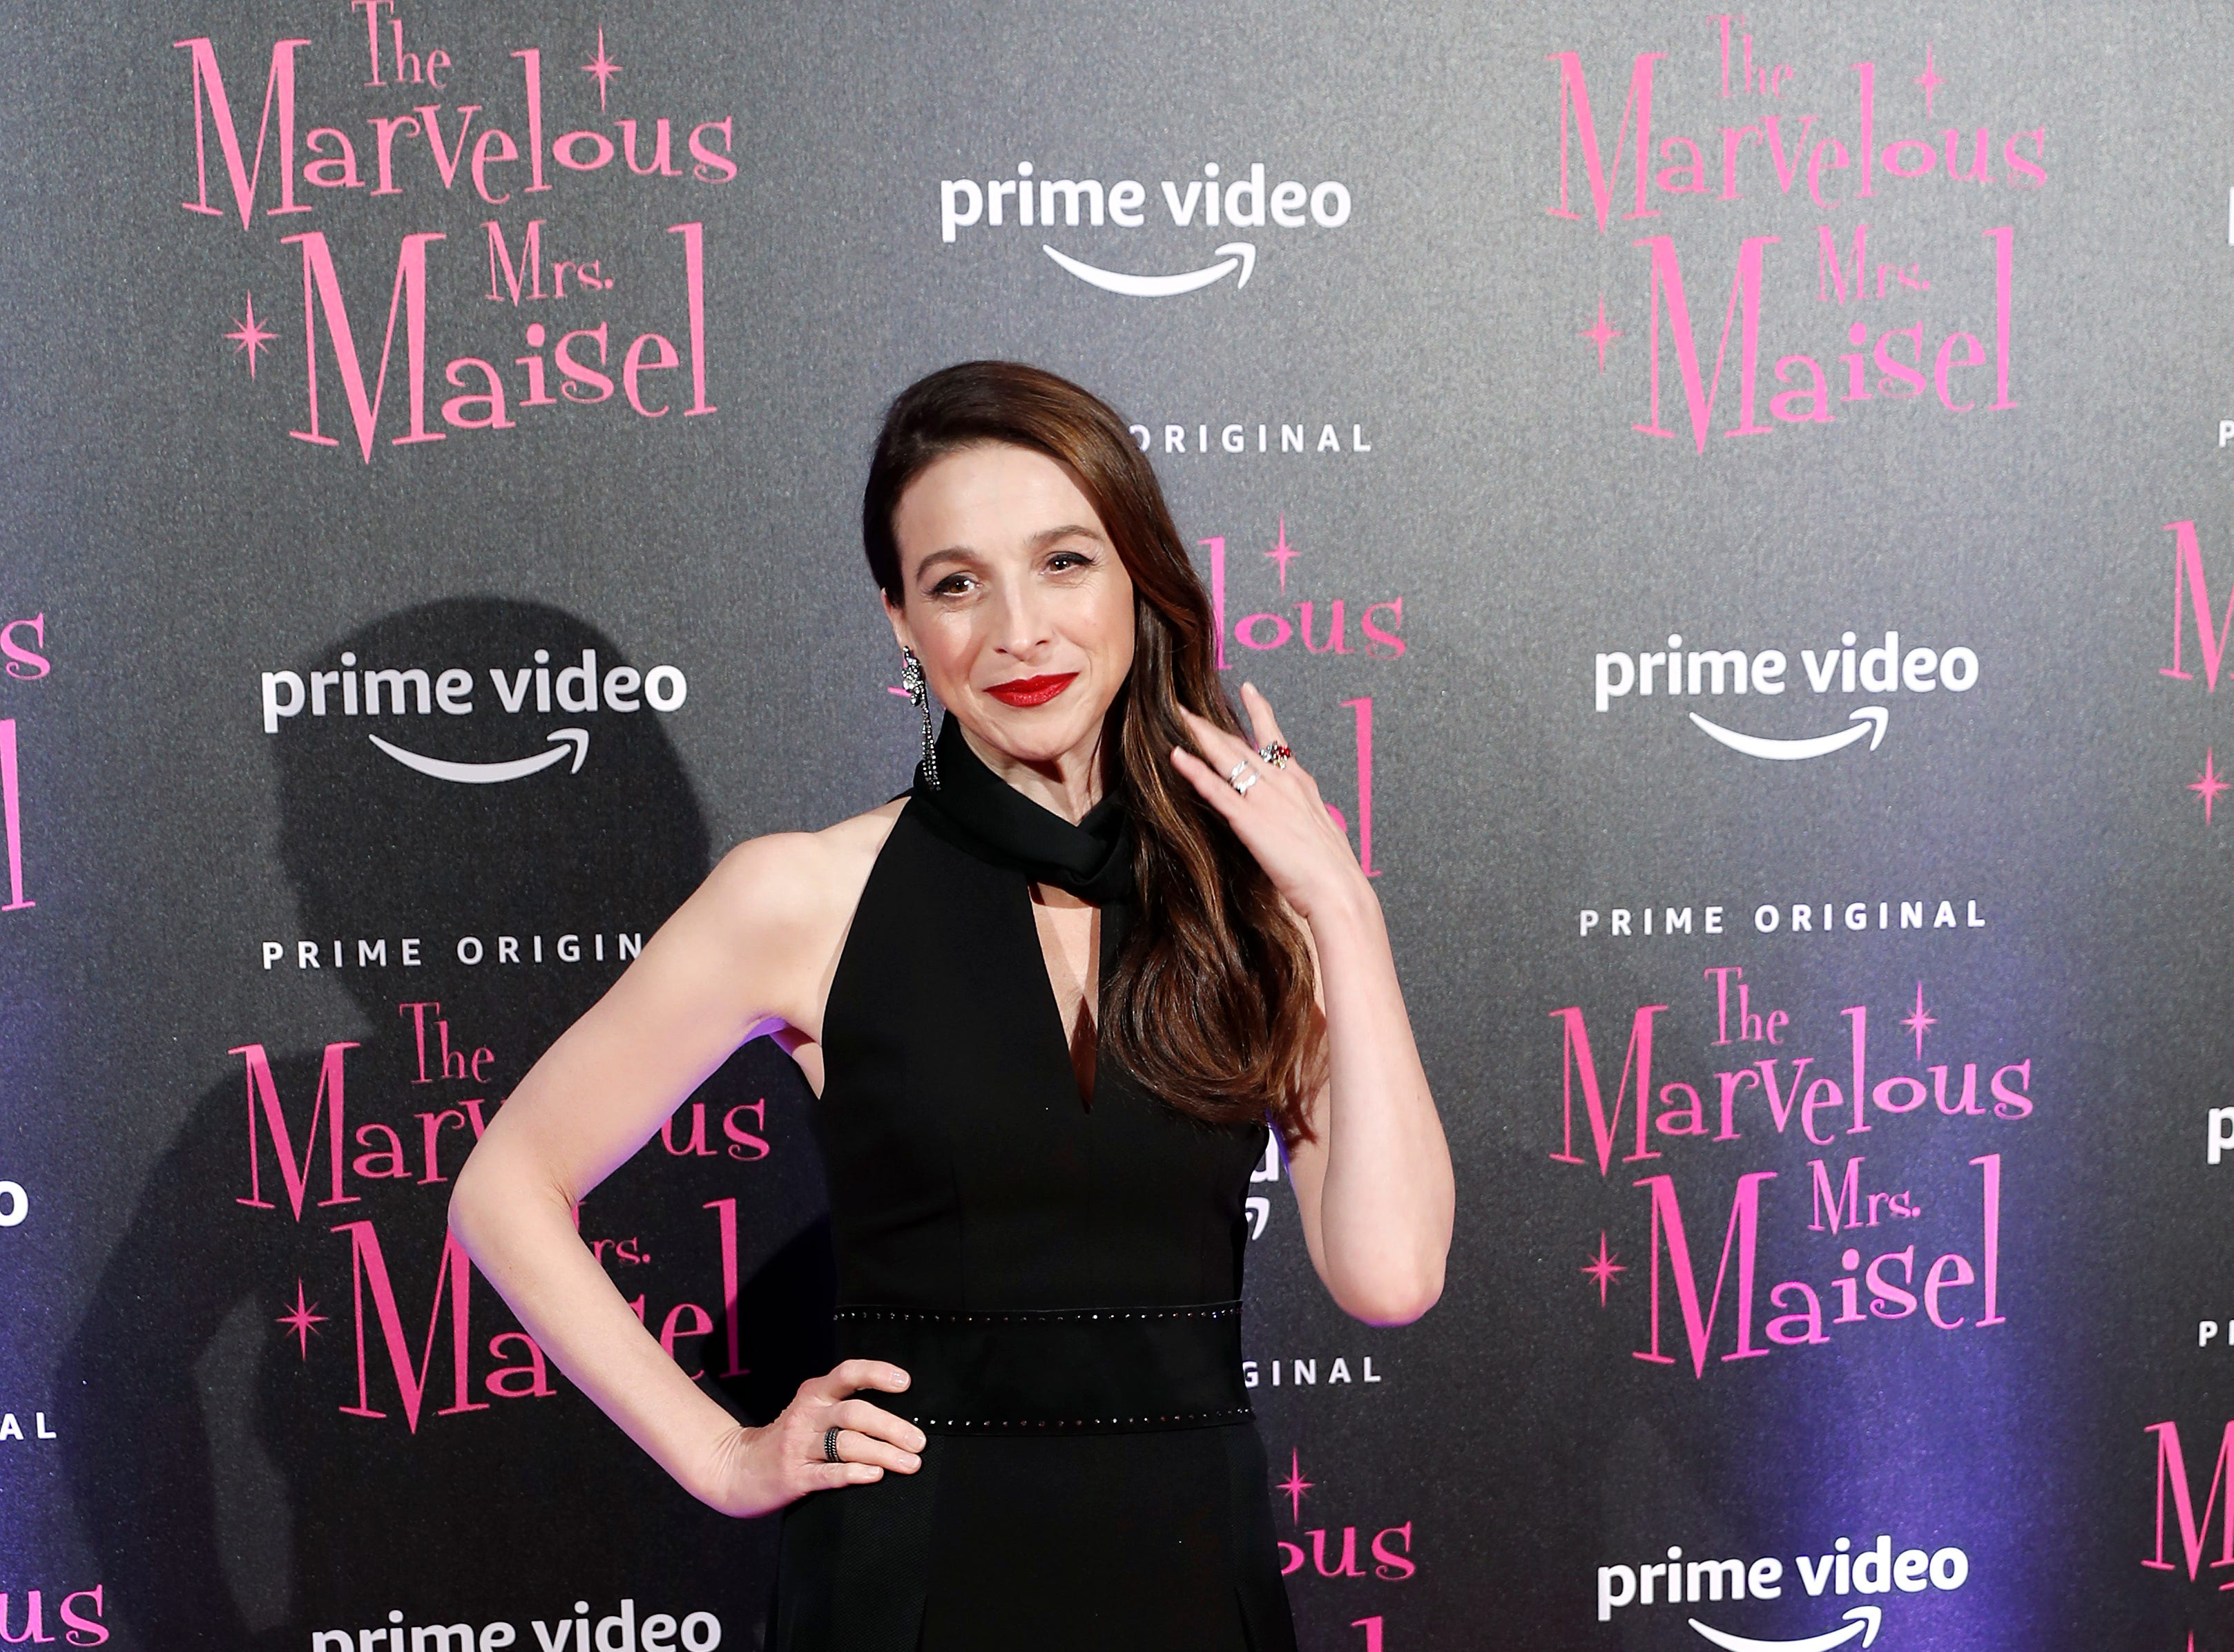 """Actress Marin Hinkle poses for photographers at the European Premiere of """"The Marvelous Mrs. Maisel"""" season 2, in Milan, Italy, Monday, Dec. 3, 2018."""